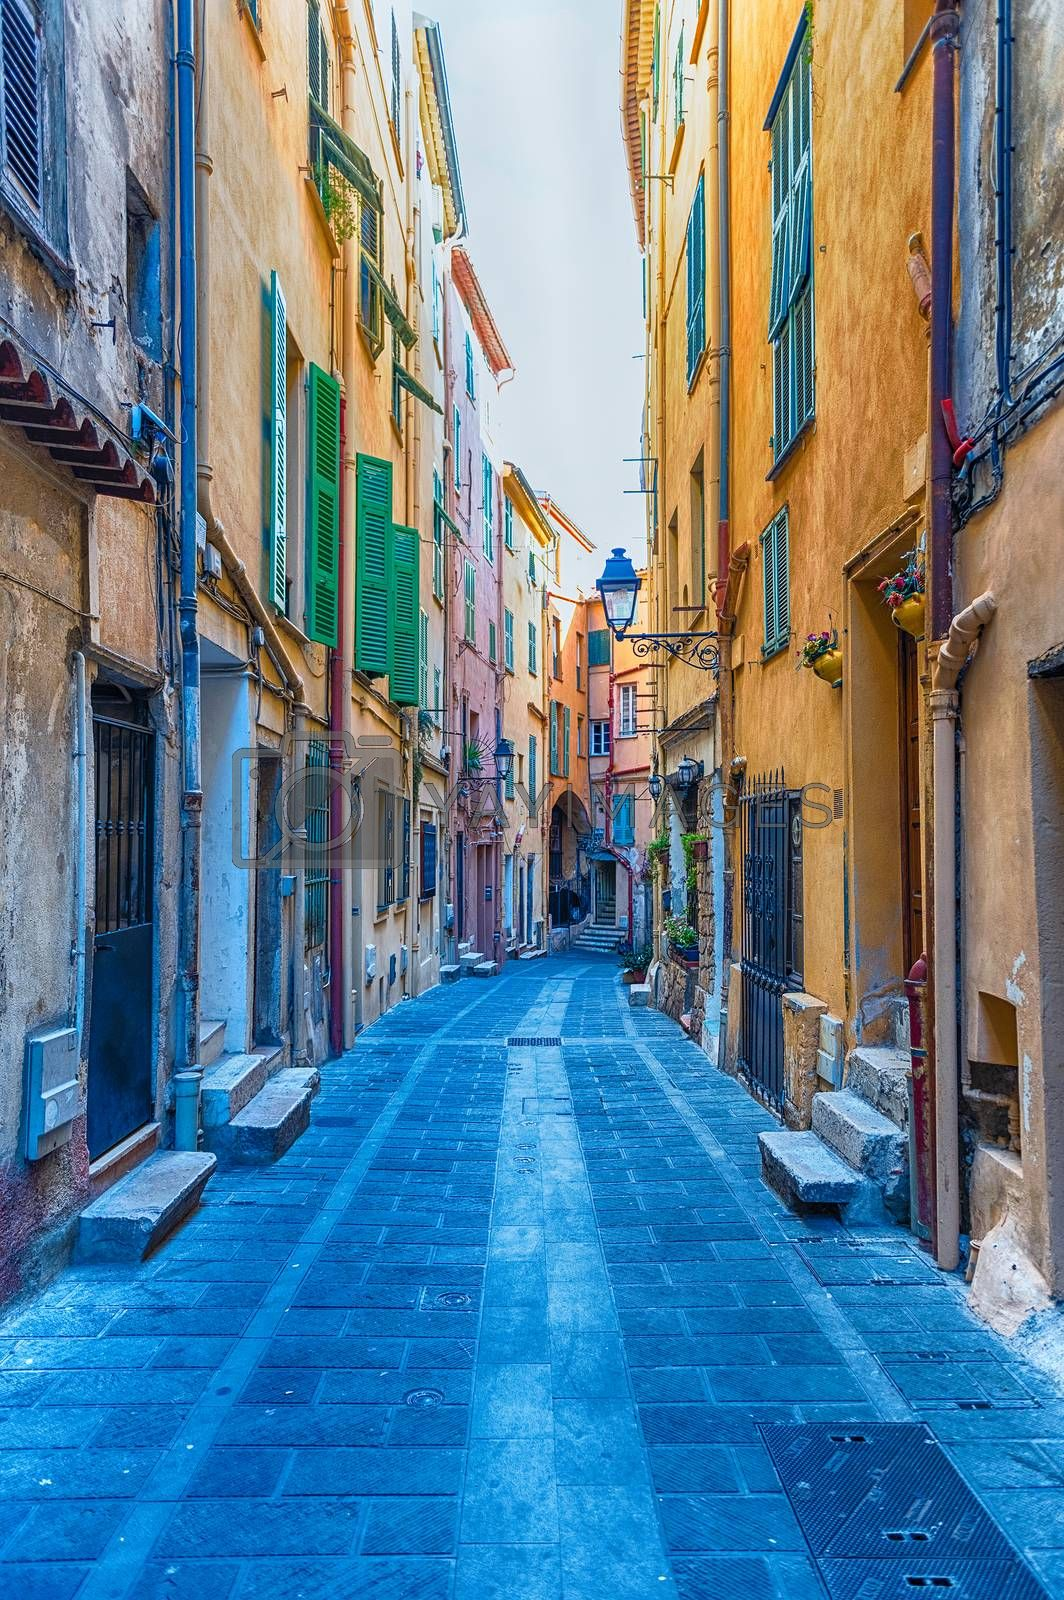 Picturesque streets in the centre of Menton, picturesque city in the Provence-Alpes-Côte d'Azur region on the French Riviera, close to the Italian border